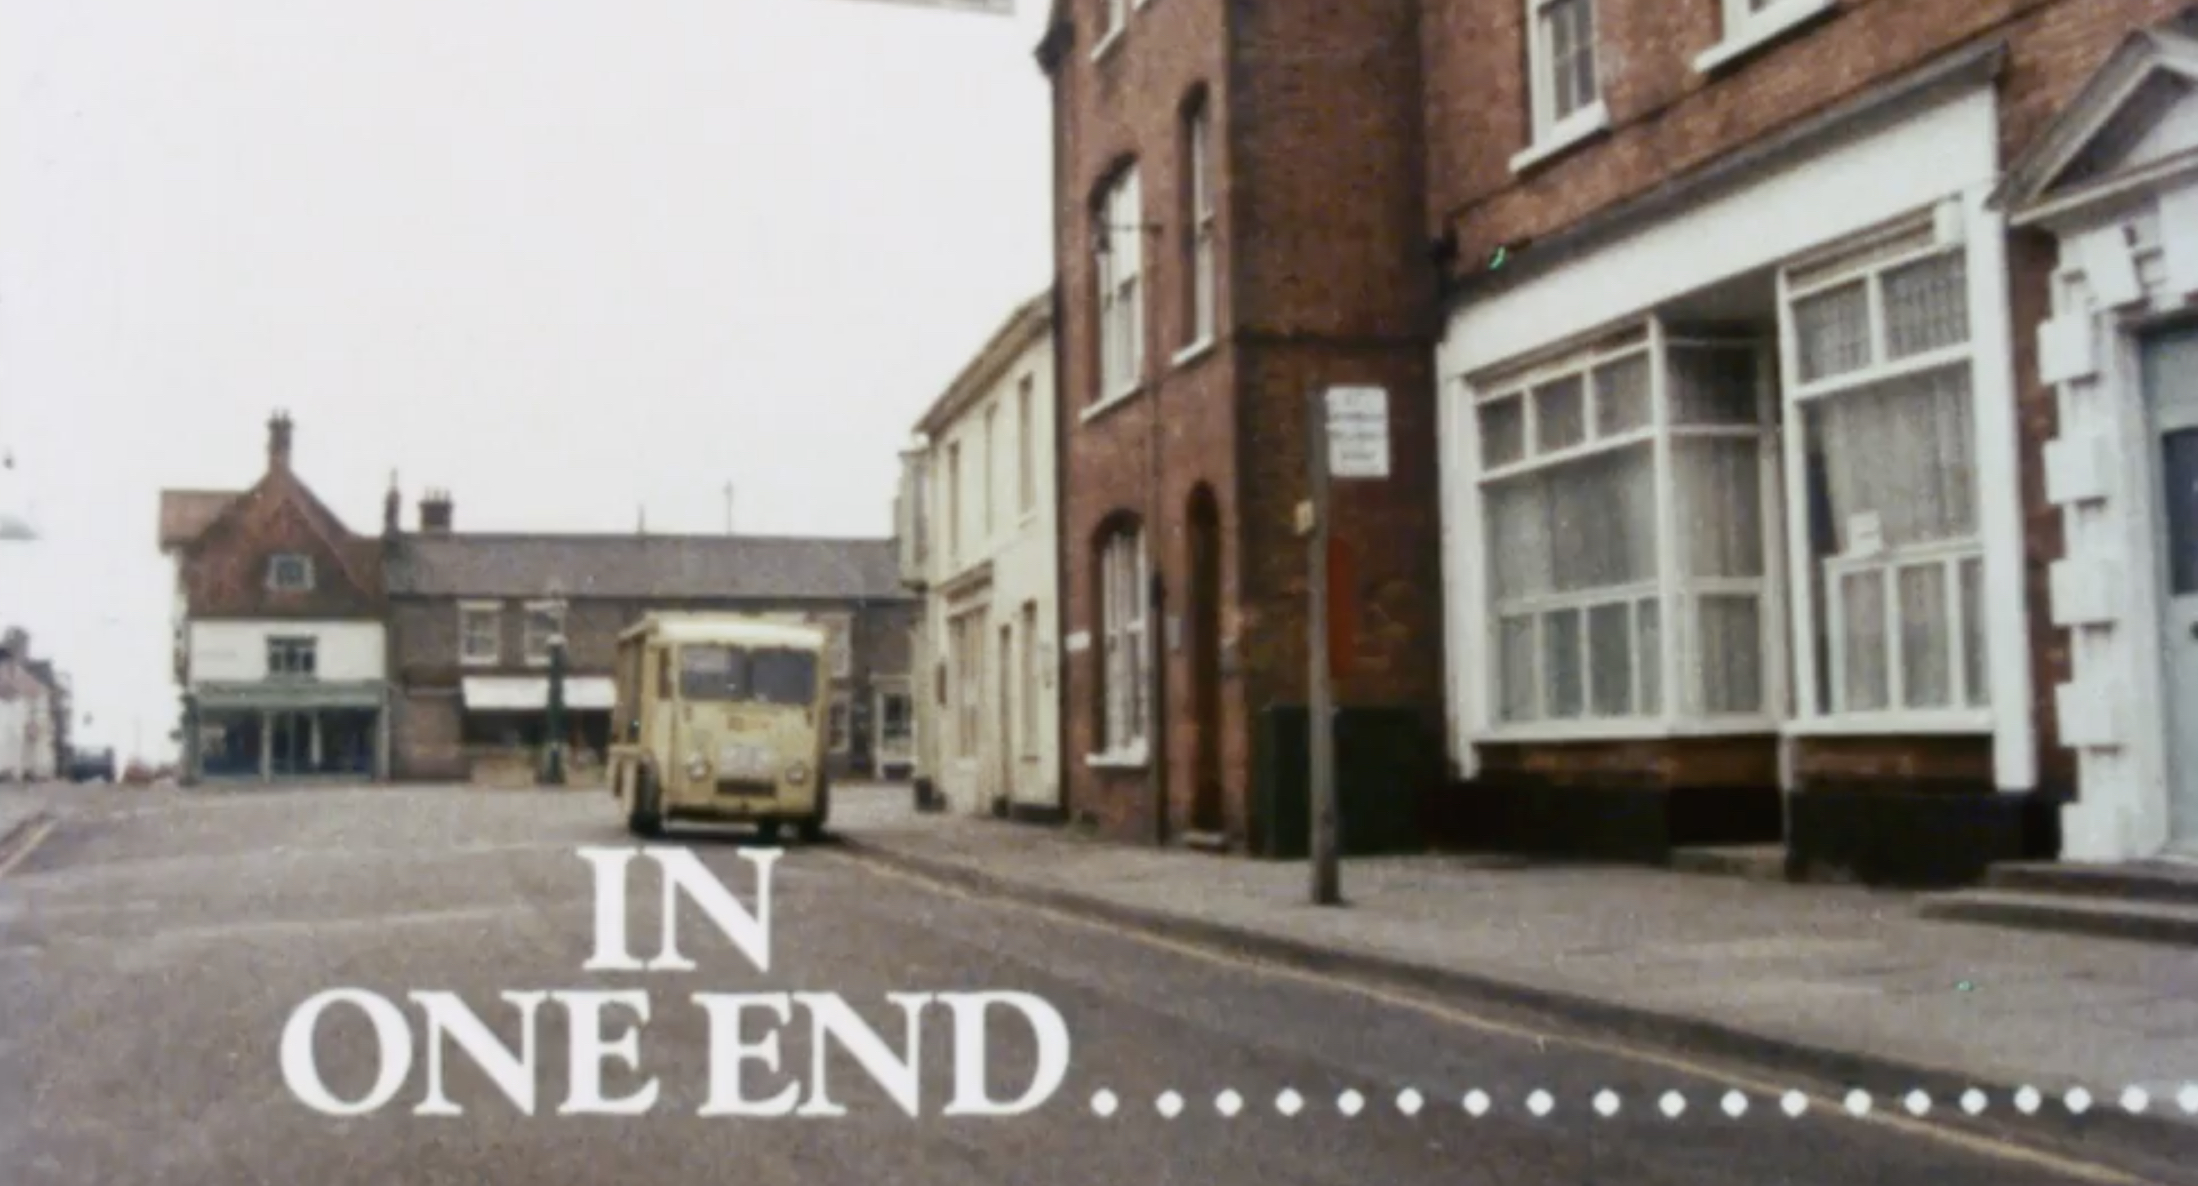 In One End by Luke Jeans featured in BFI collection